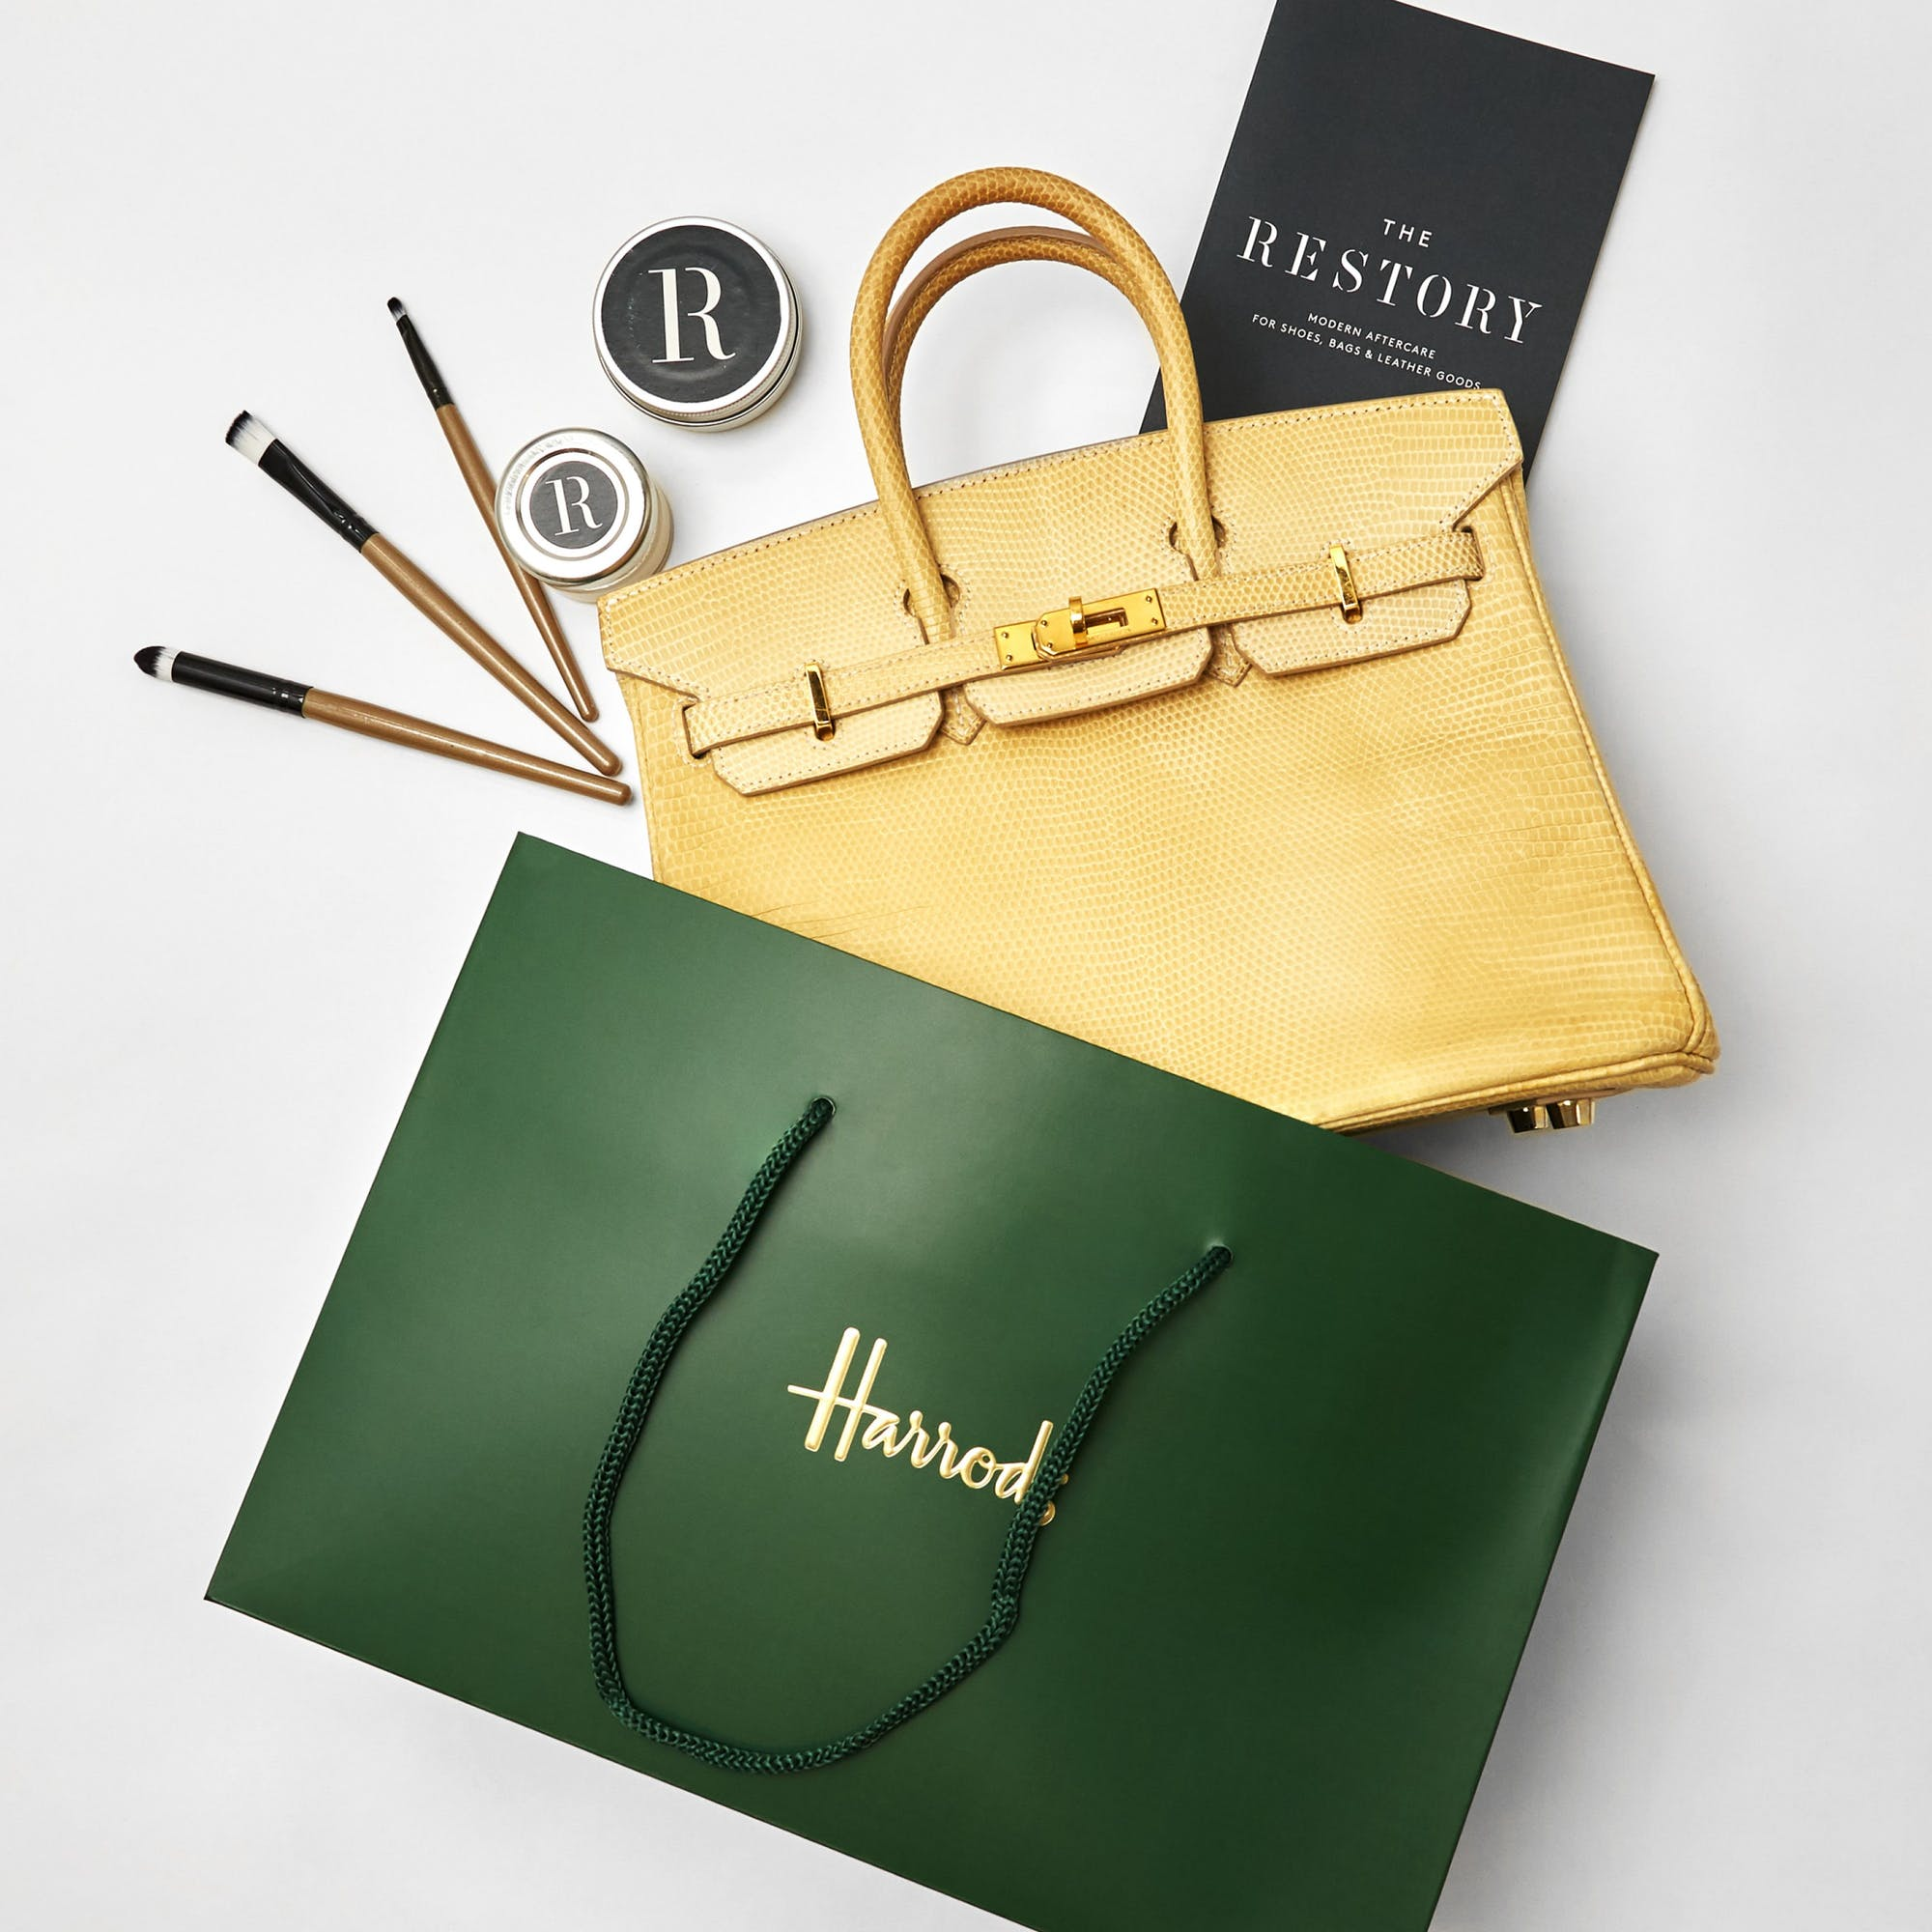 Luxury aftercare service The Restory launches with Harrods